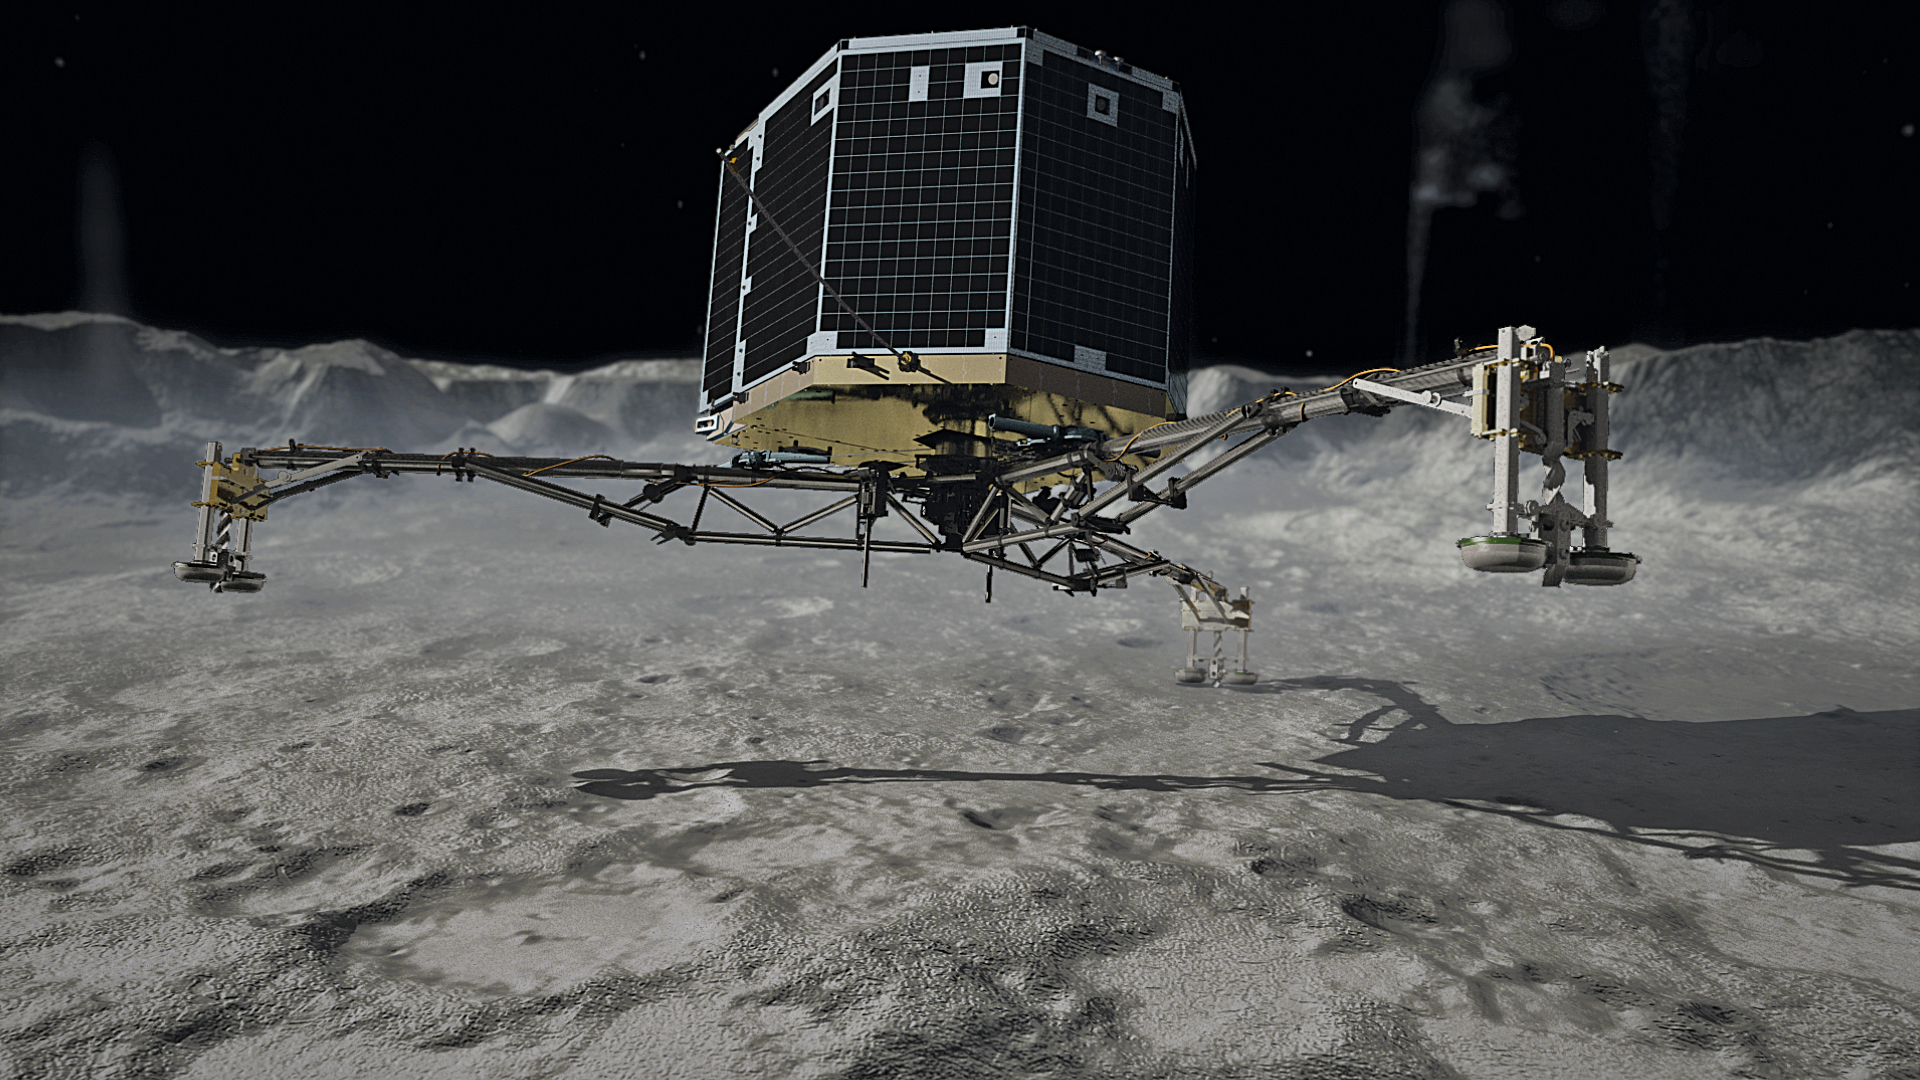 Artist concept of Rosetta's Philae lander touching down